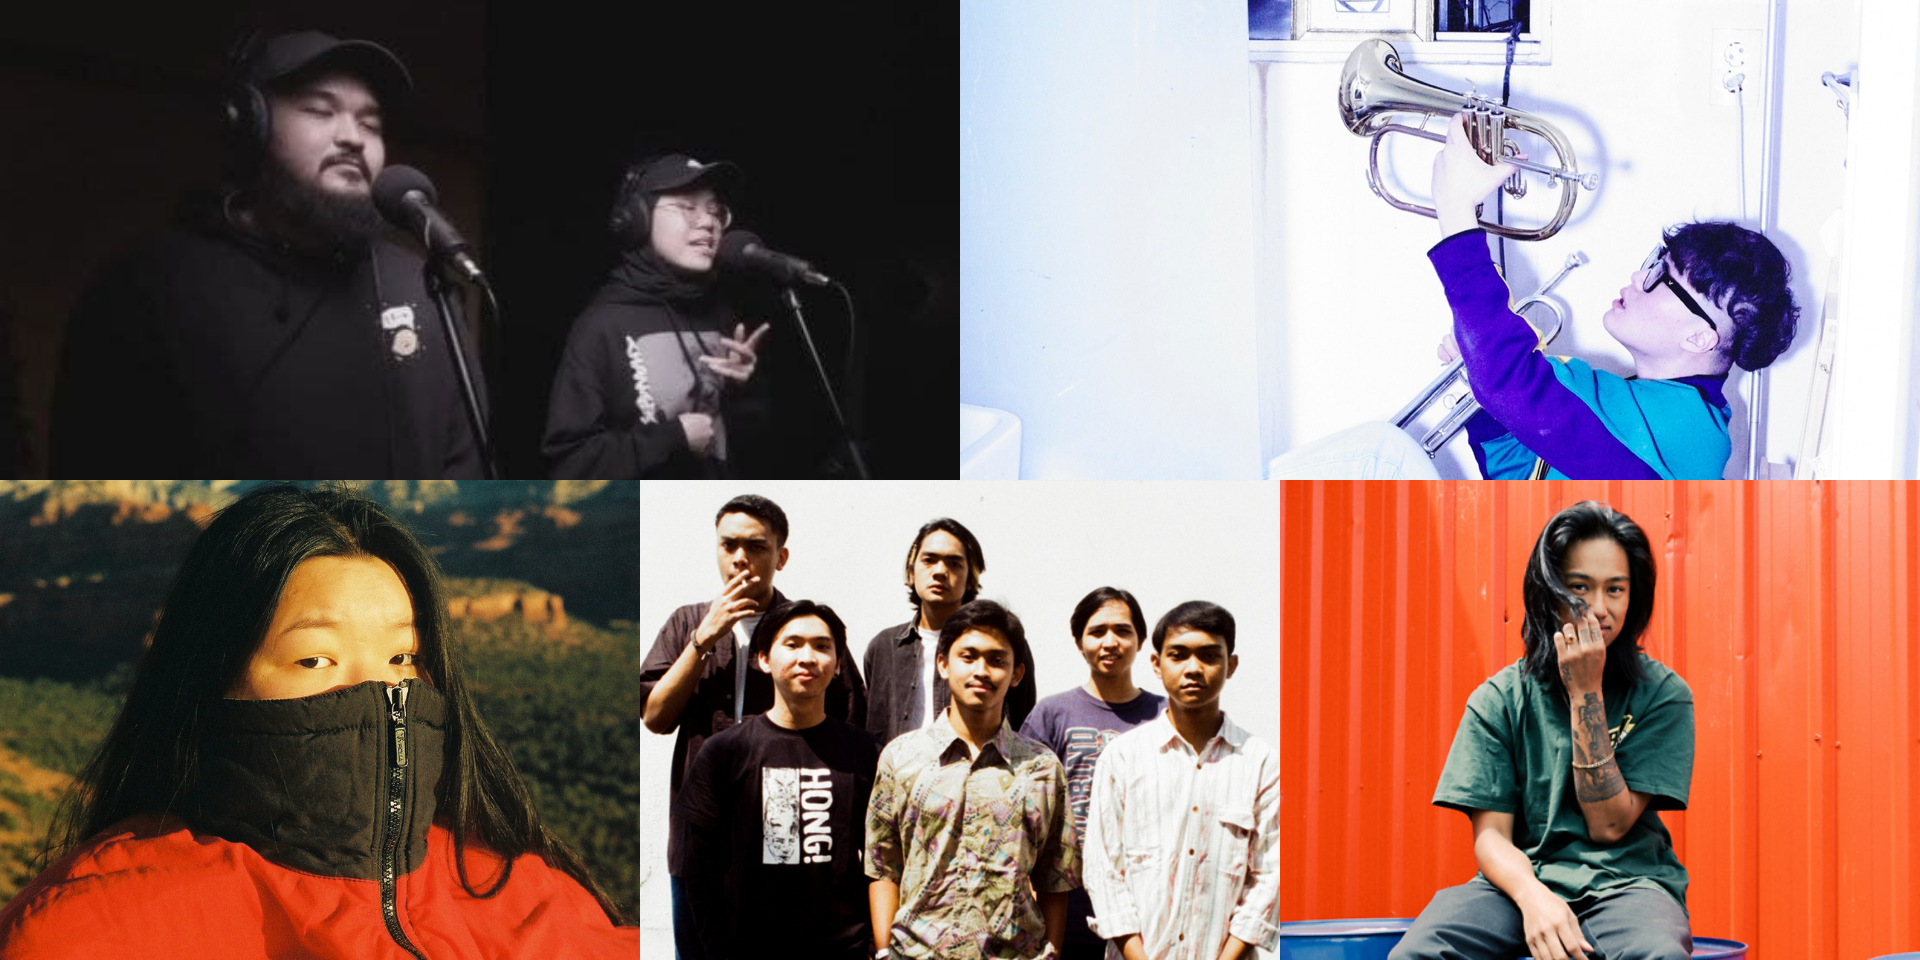 Vans Musicians Wanted 2021 Asia-Pacific top 5 finalists: Q The Trumpet, Nathanie, Squid the Kid, Kinder Bloomen, and Yishun Panik